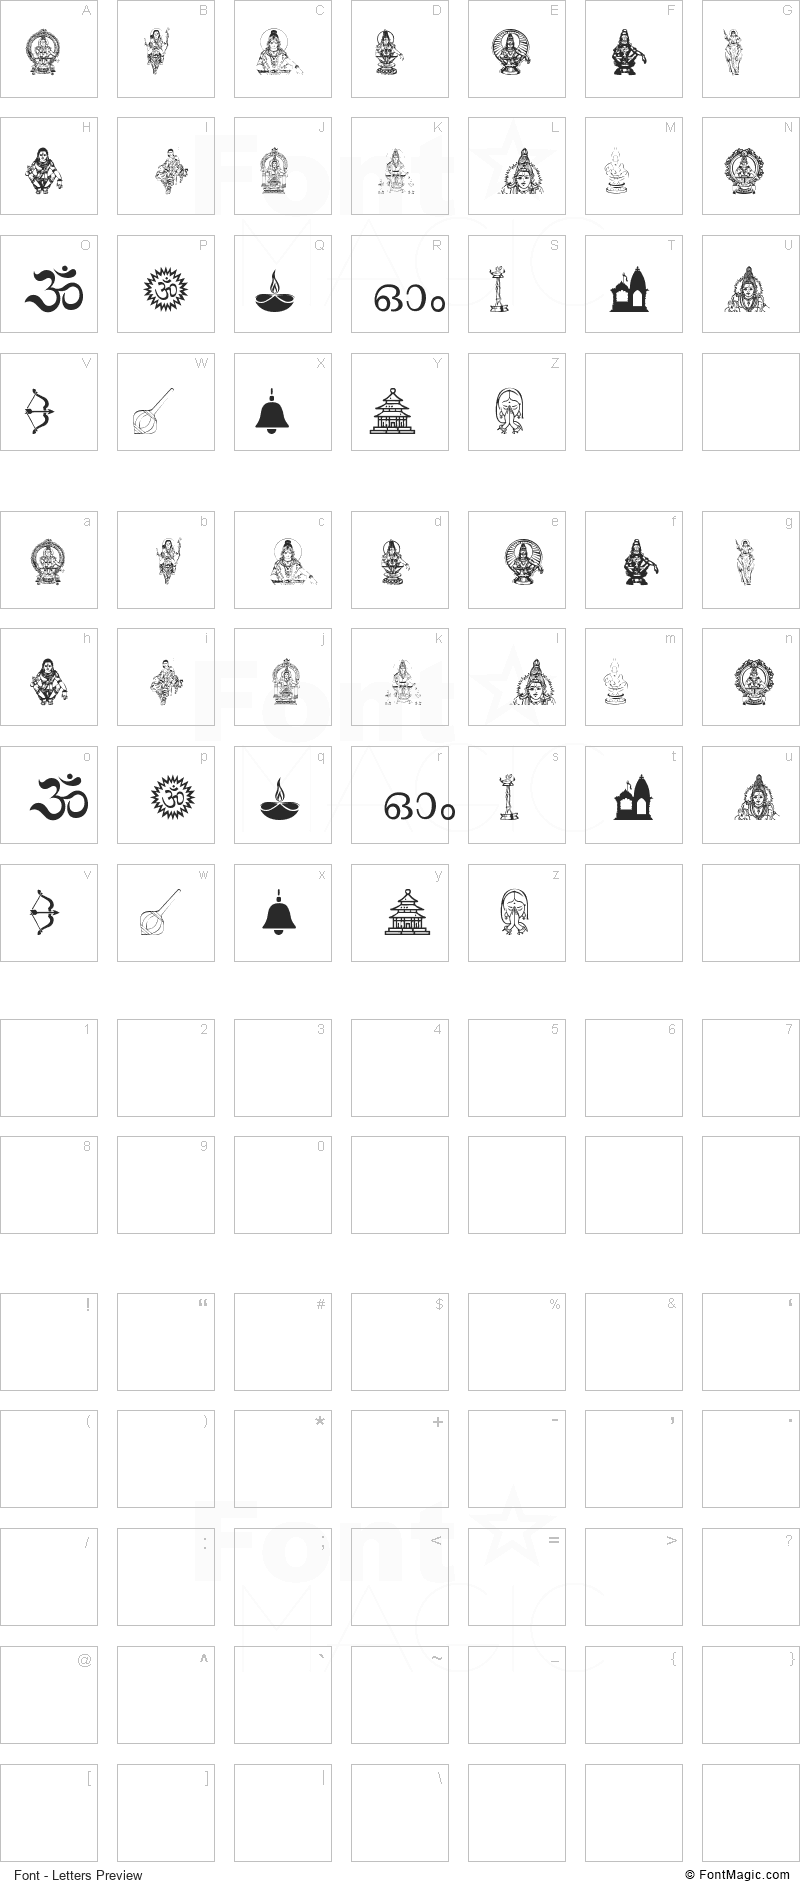 Ayyappa Swamy Font - All Latters Preview Chart